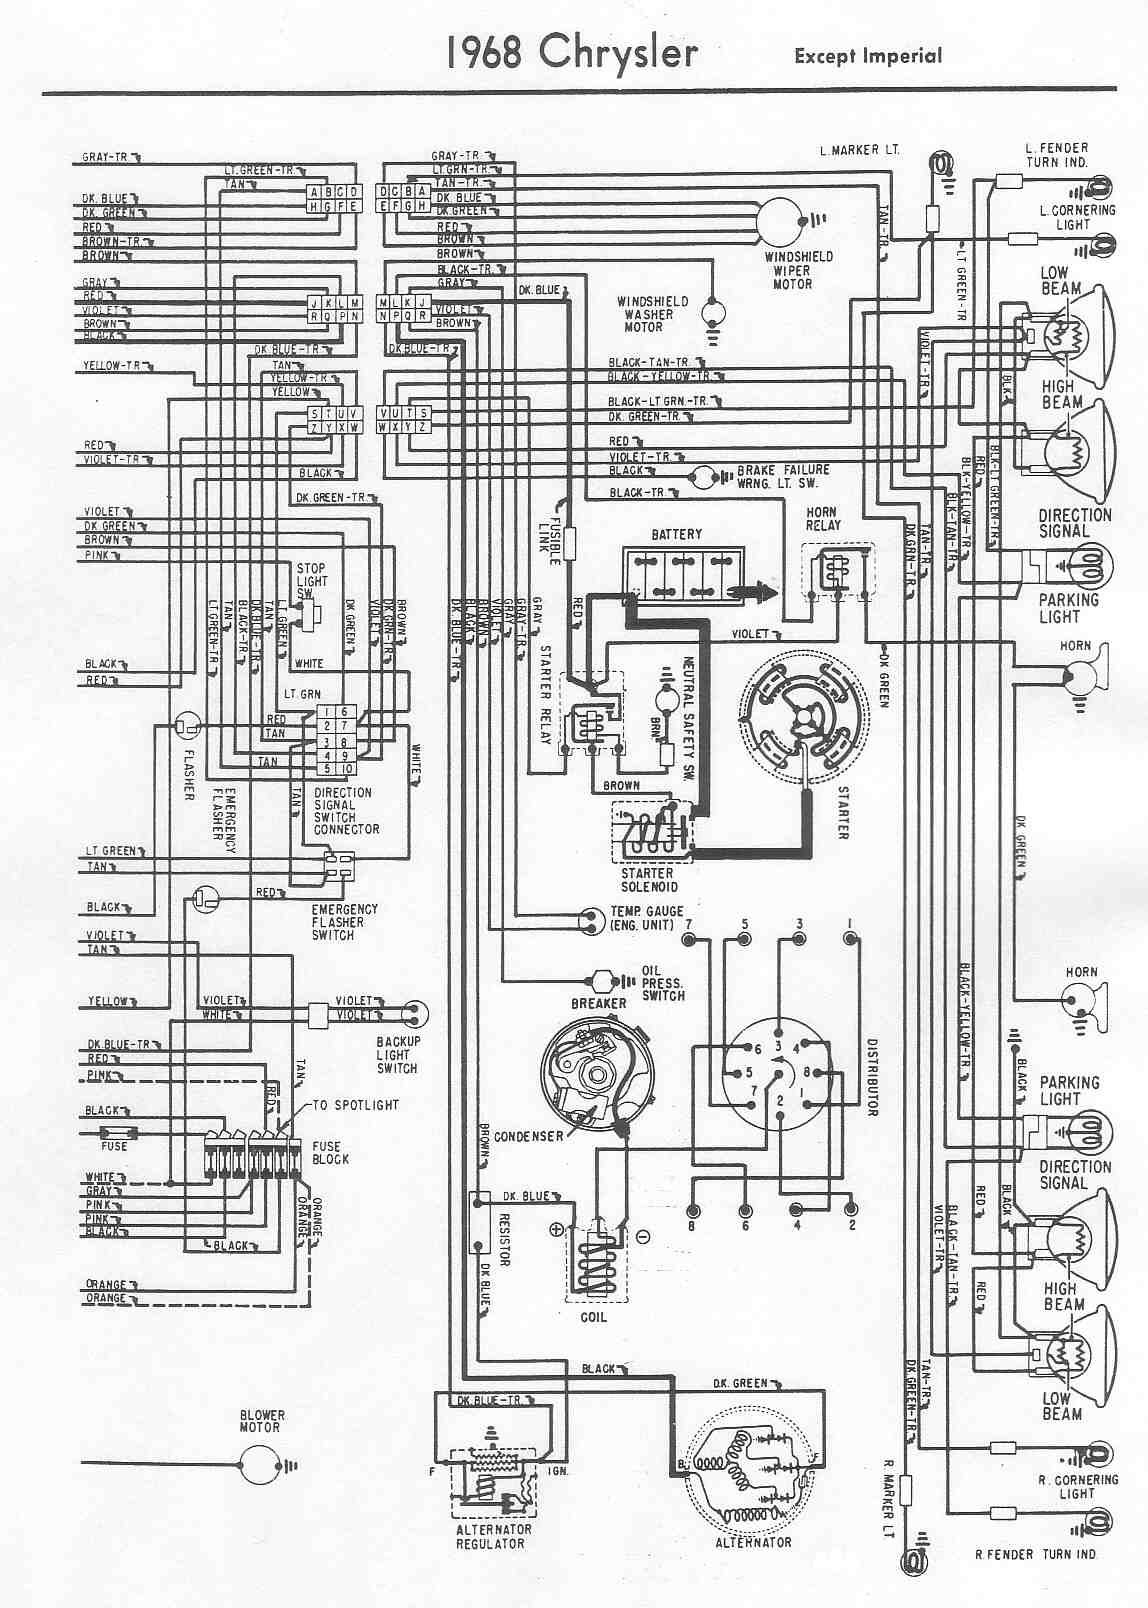 Chrysler Car Pdf Manual Wiring Diagram Fault Codes Dtc